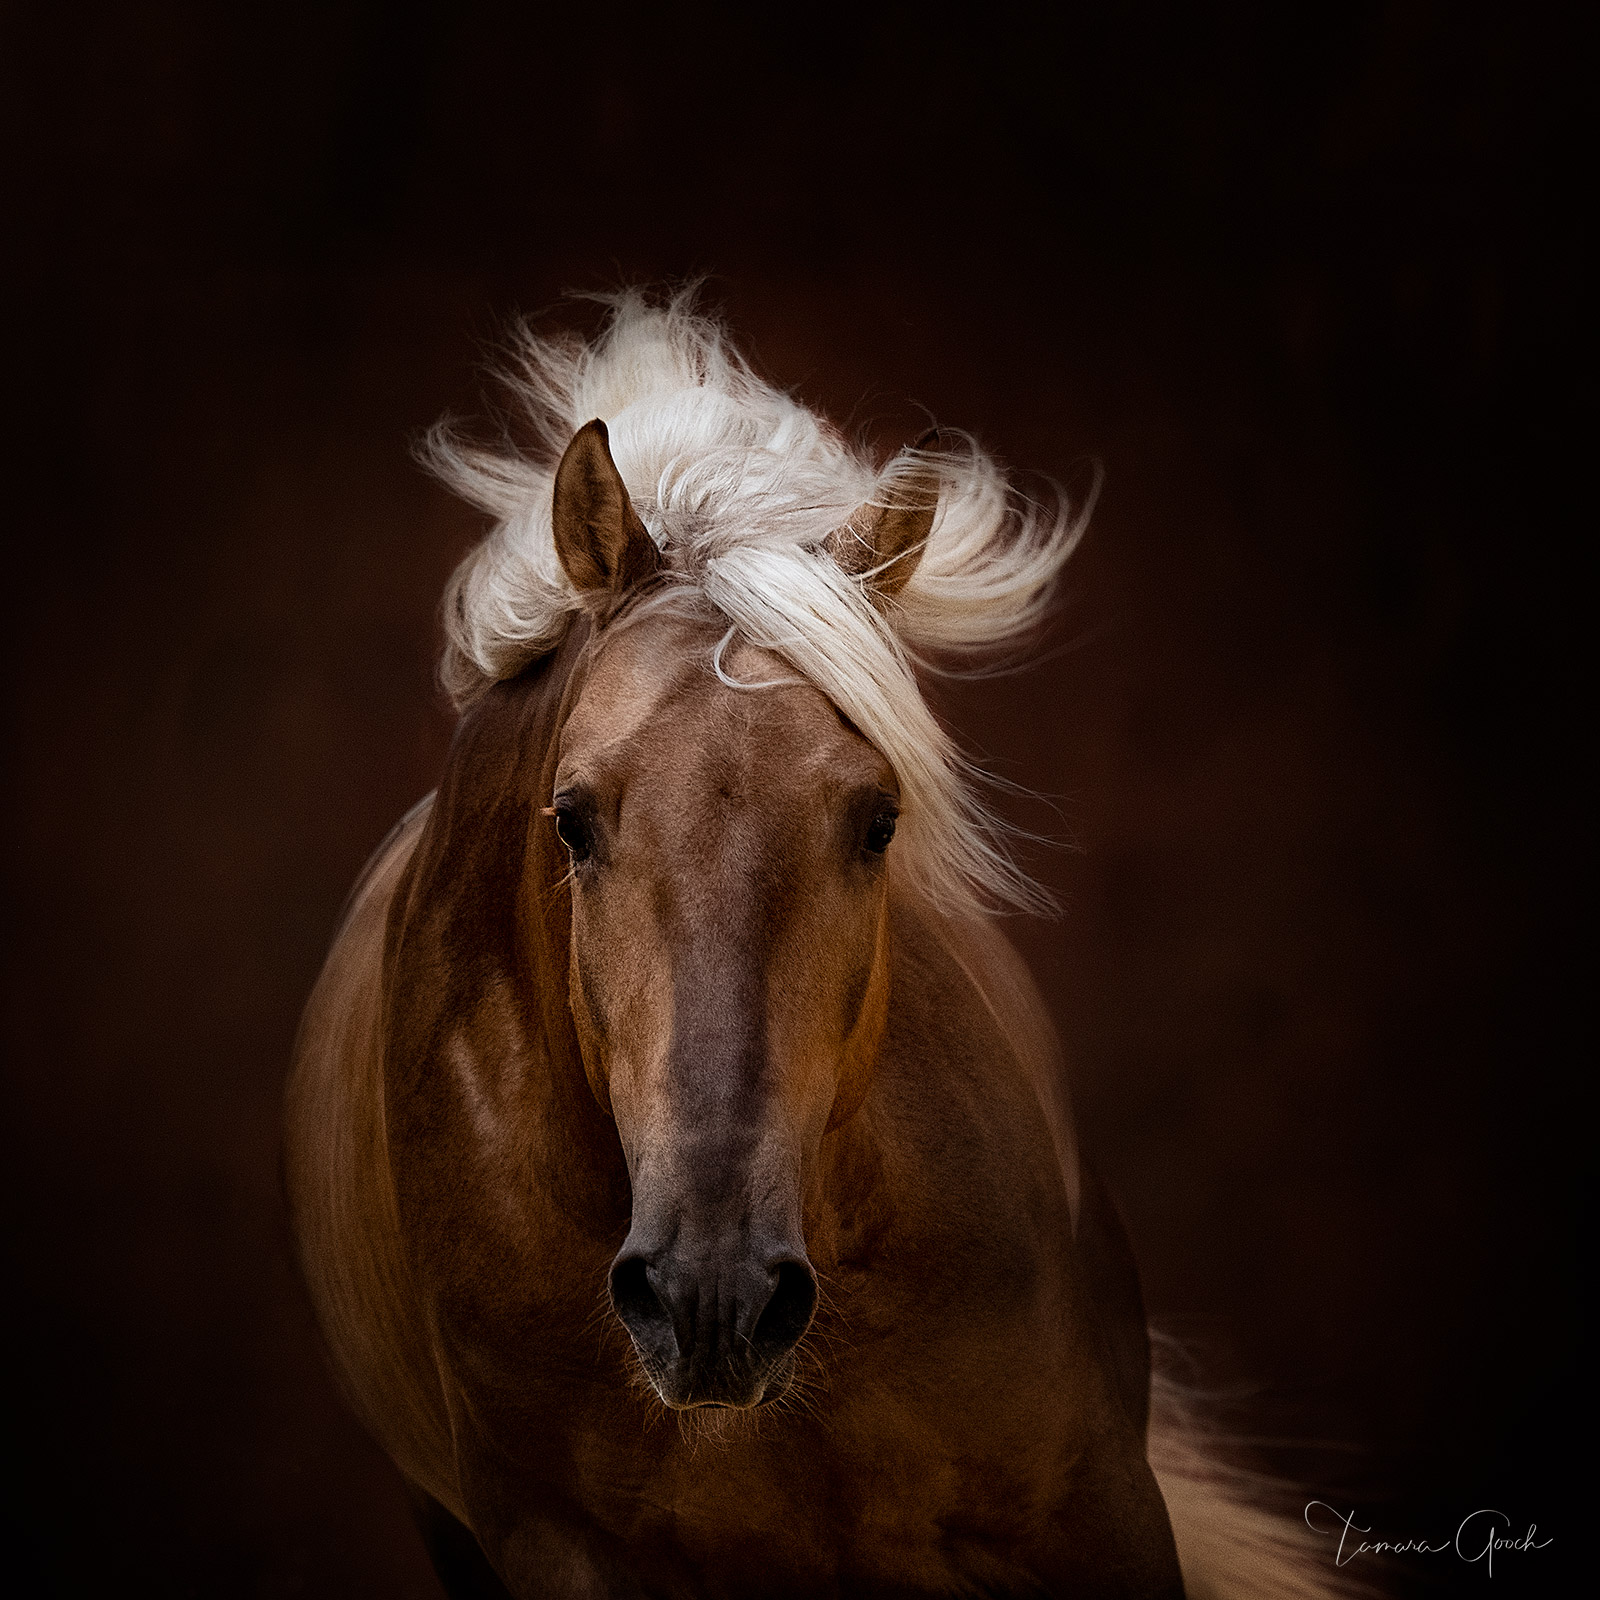 Gallery quality fine art print of a palomino Lusitano horse.